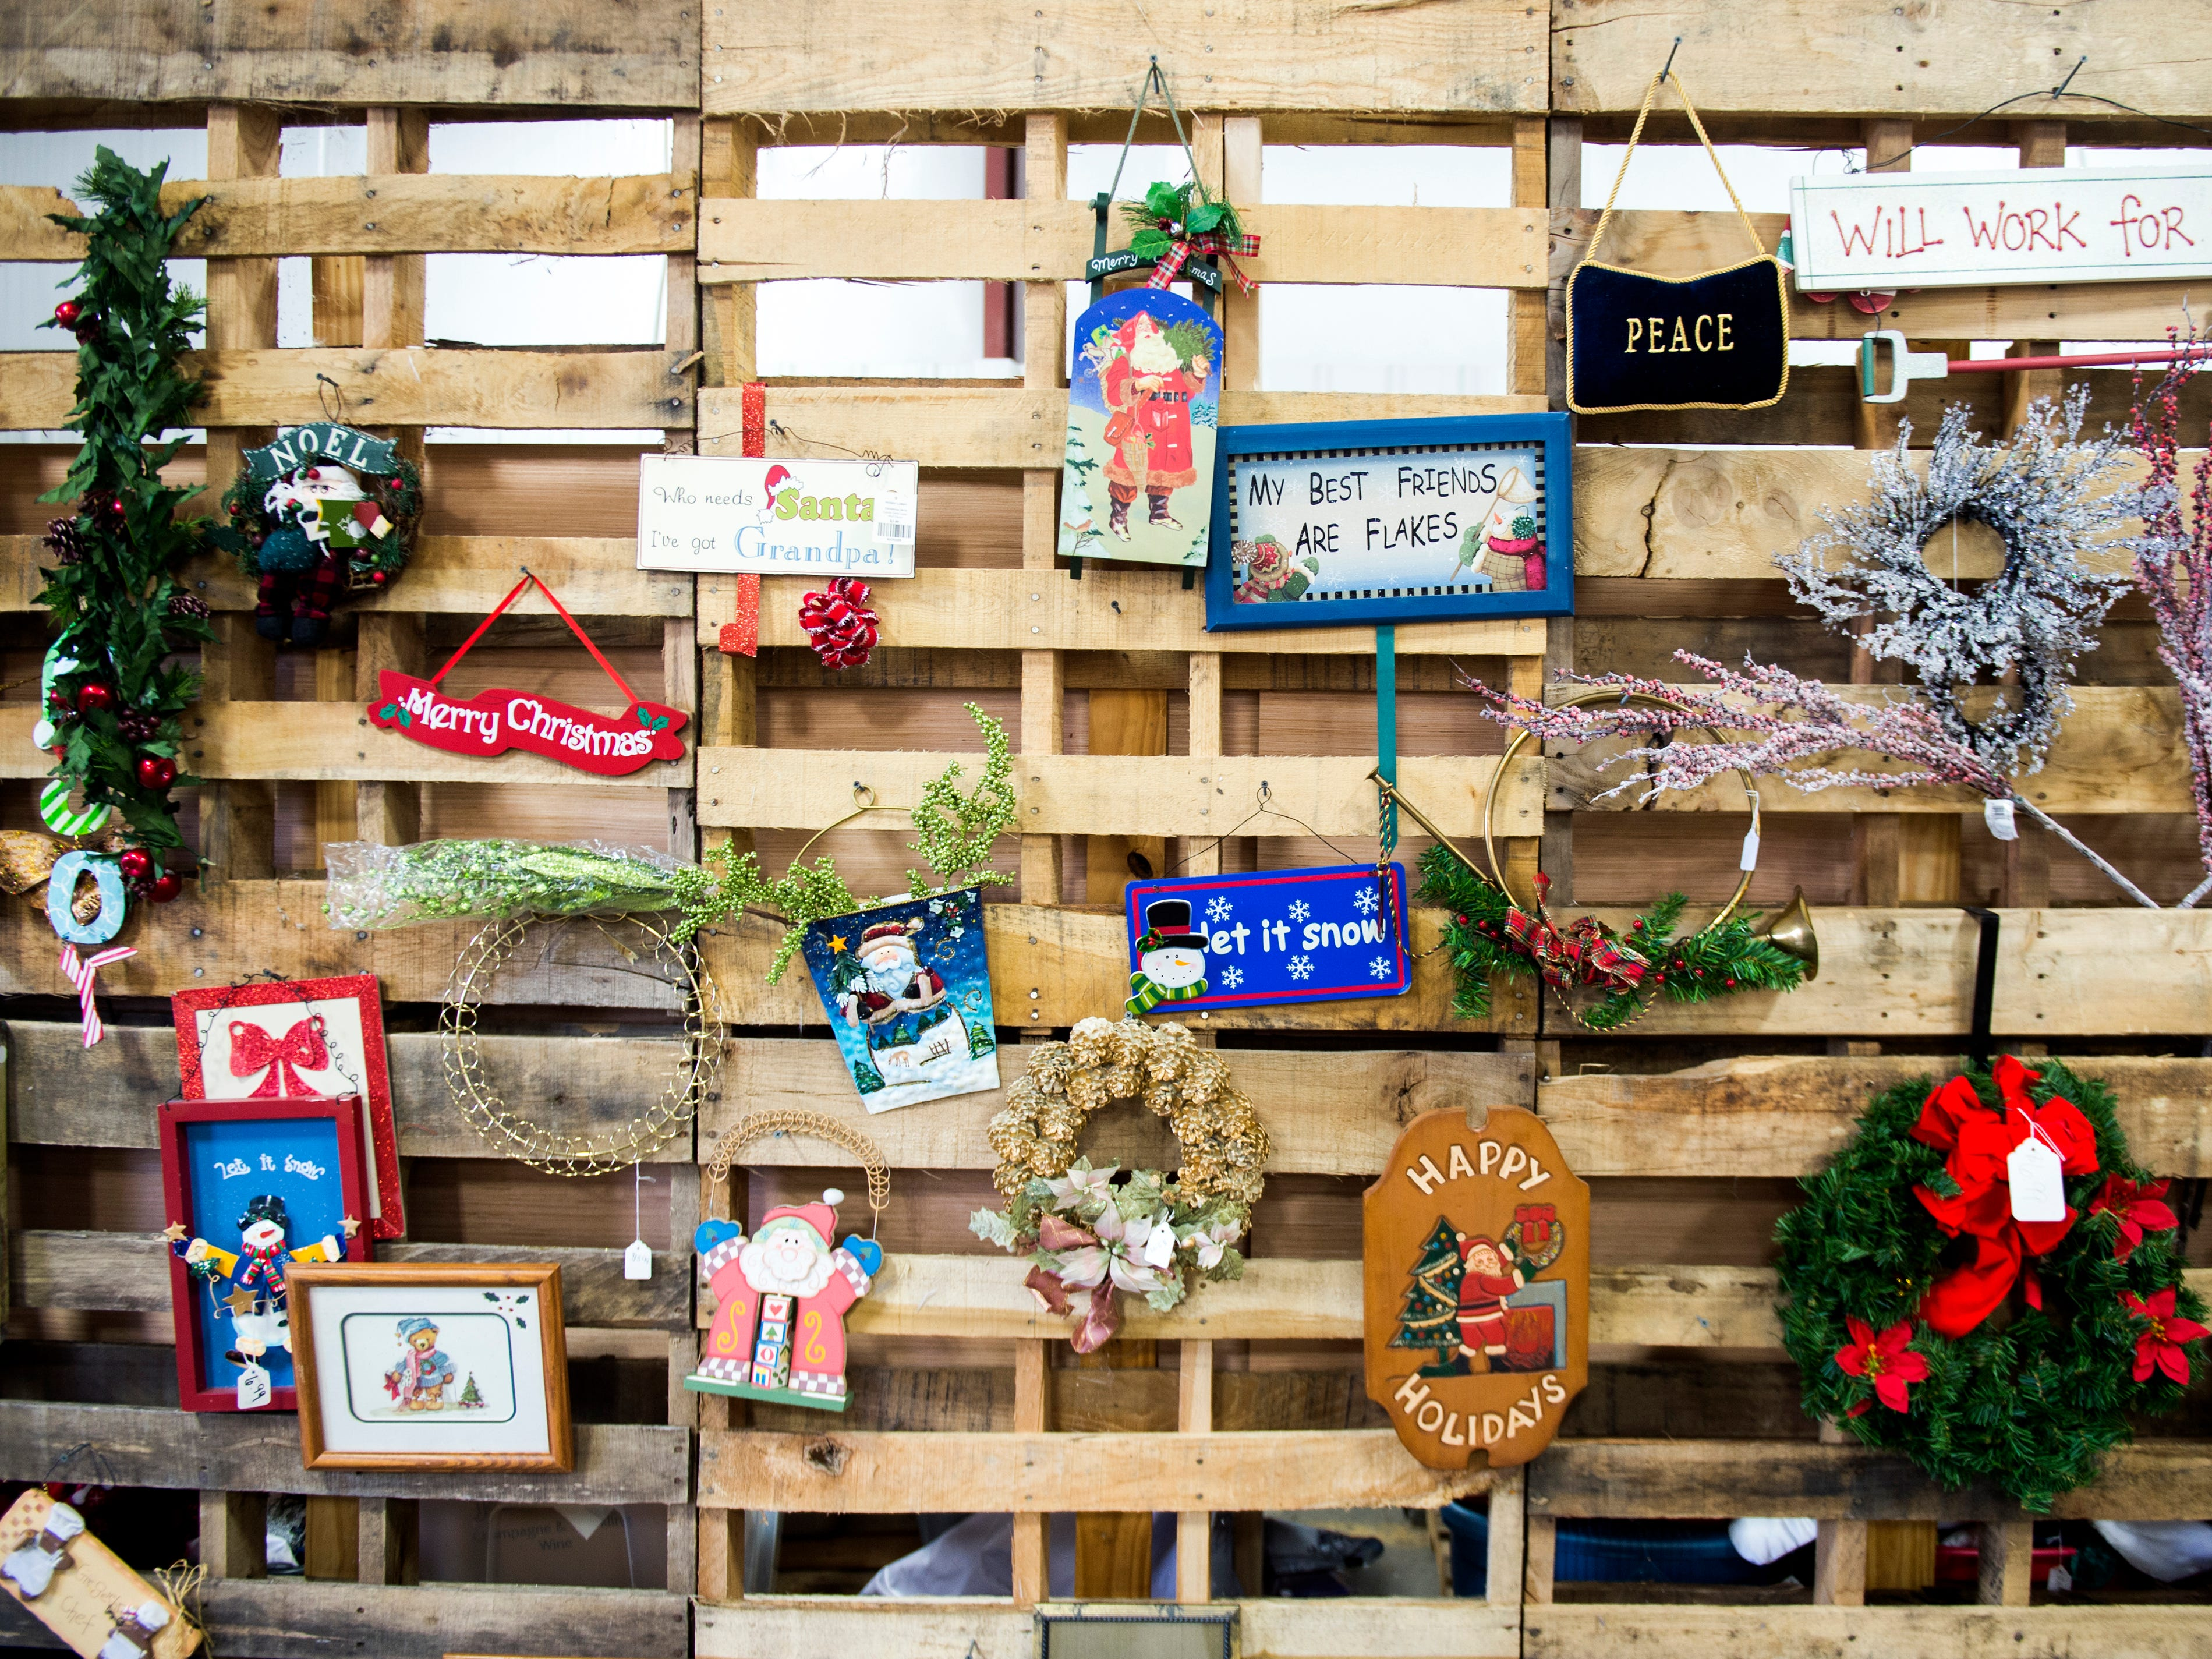 Christmas decorations for sale at the KARM Christmas Store located at 9629 Parkside Drive in Knoxville on Tuesday, November 13, 2018.